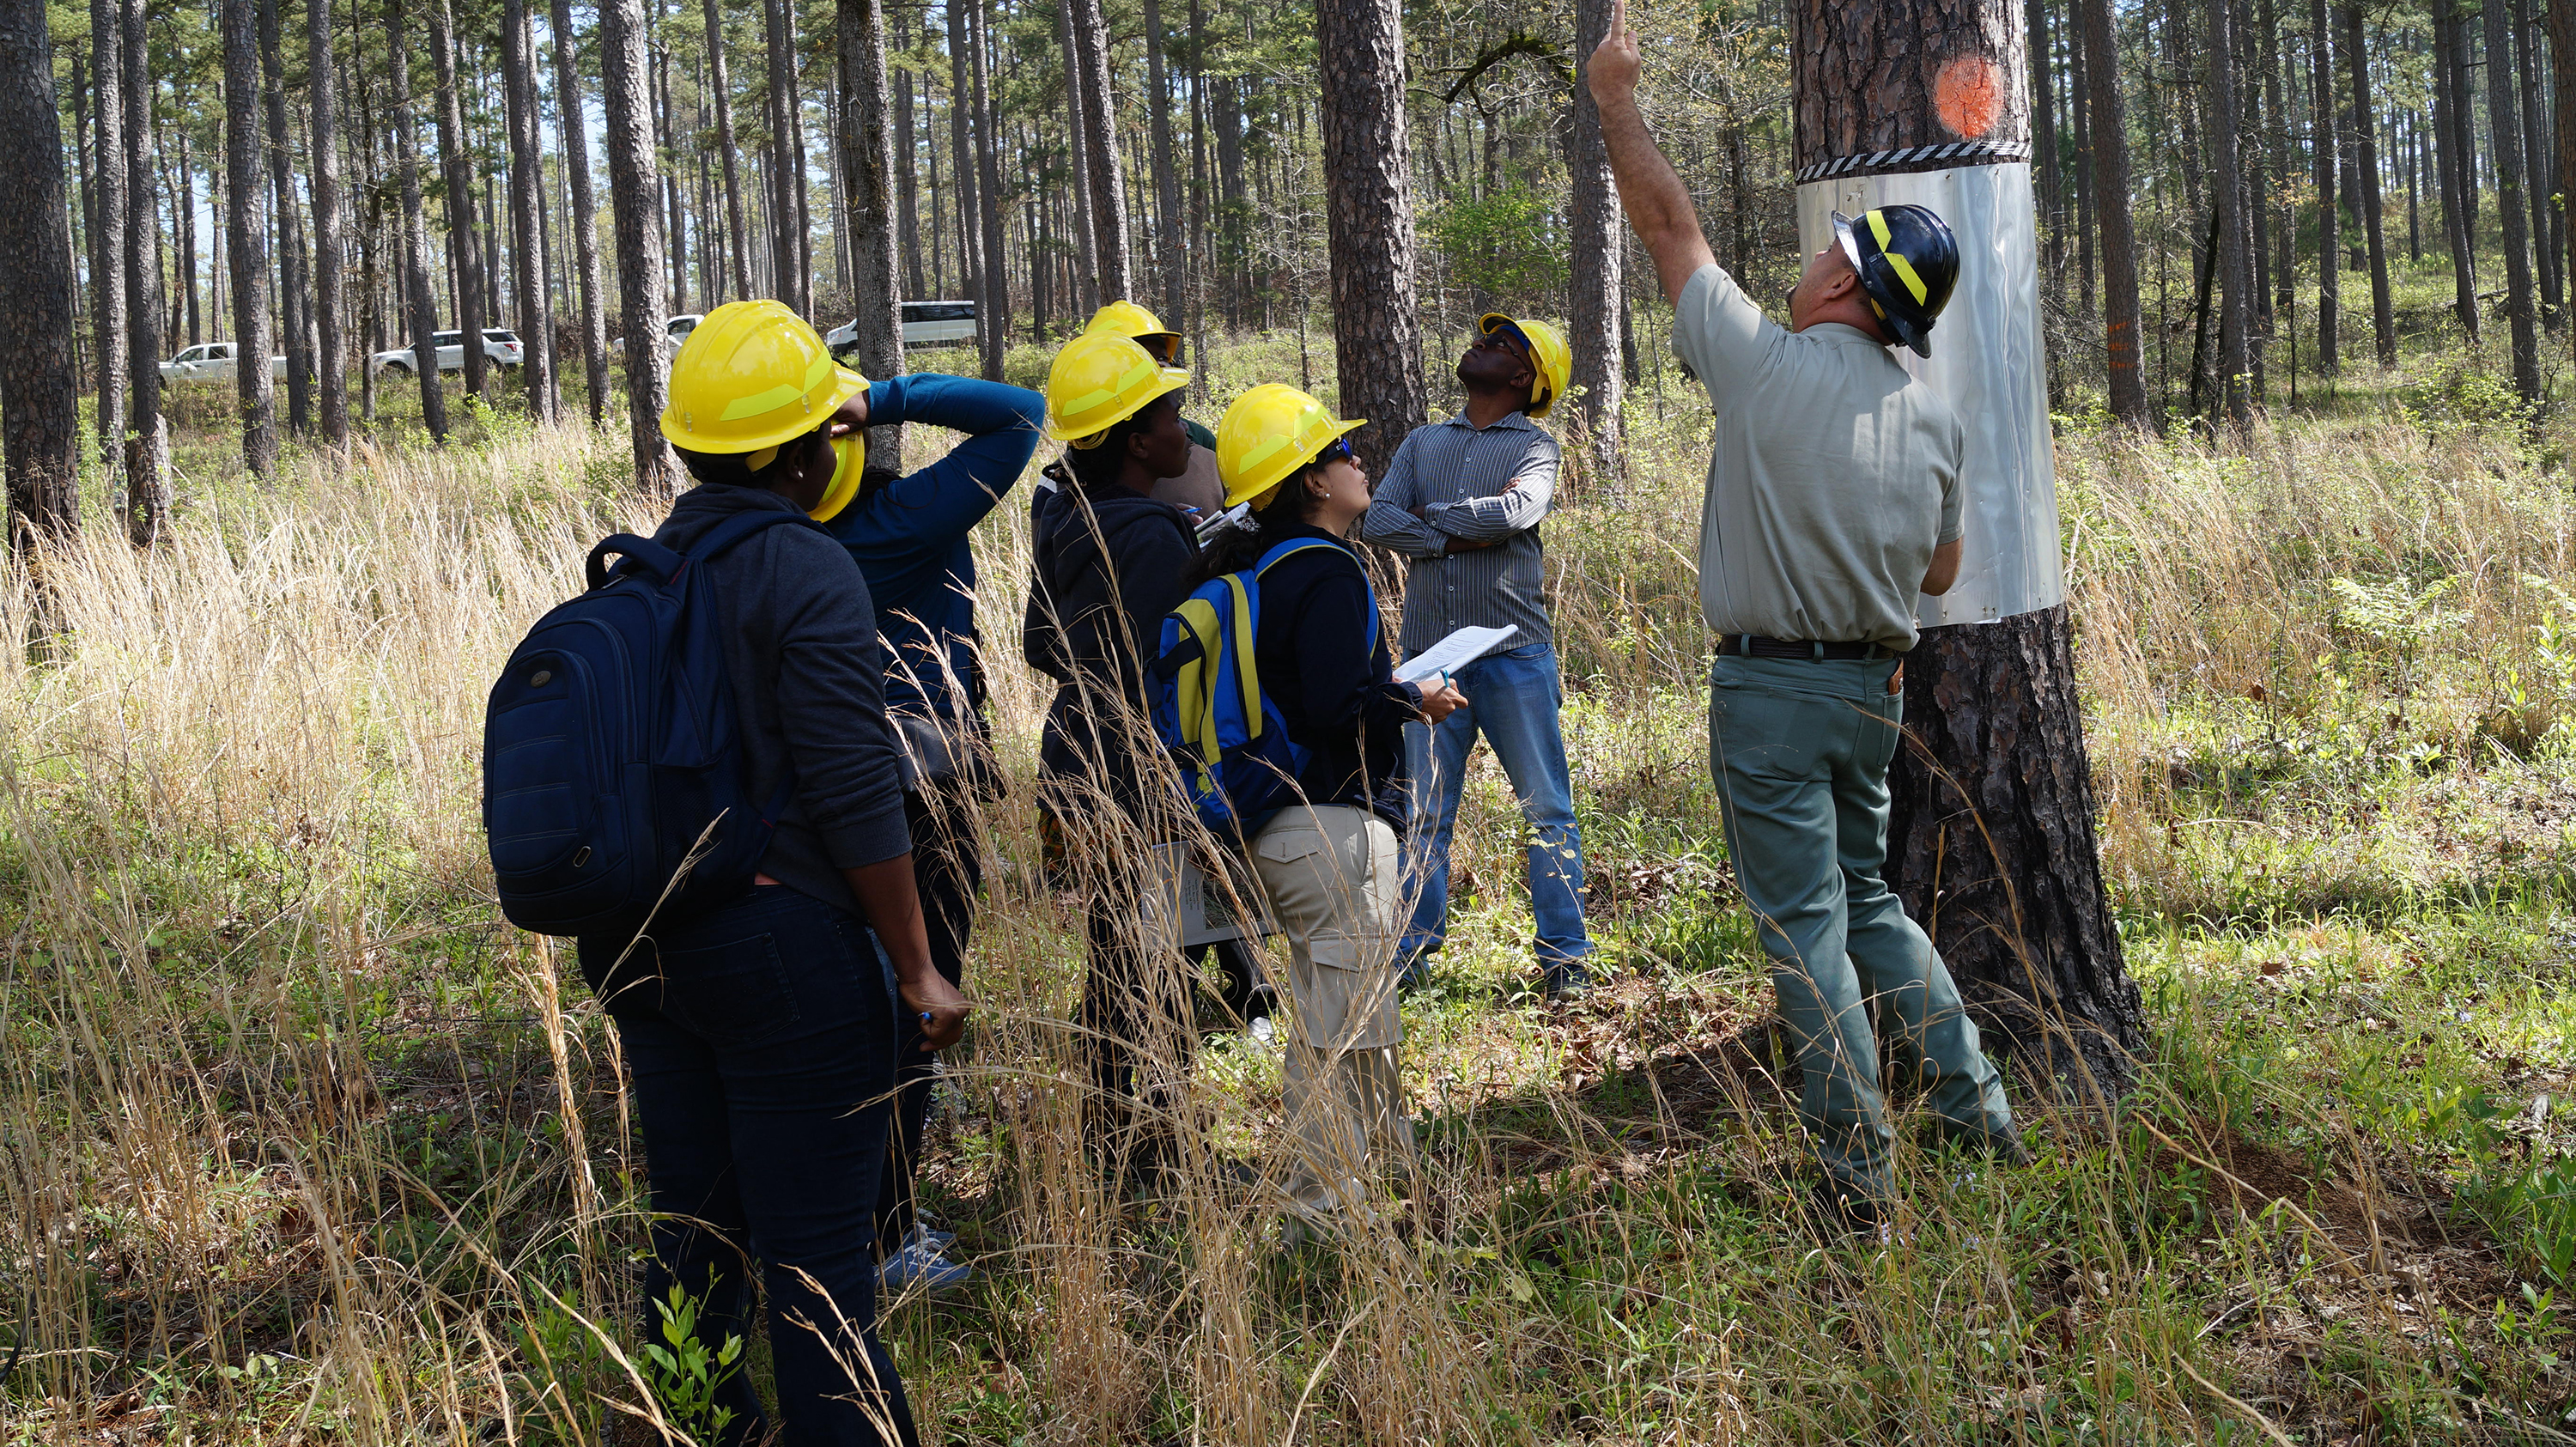 Fire managers from Columbia and Zambia learn about using fire to manage for wildlife species , such as the Red-cockaded woodpecker found on the Ouachita National Forest in Arkansas